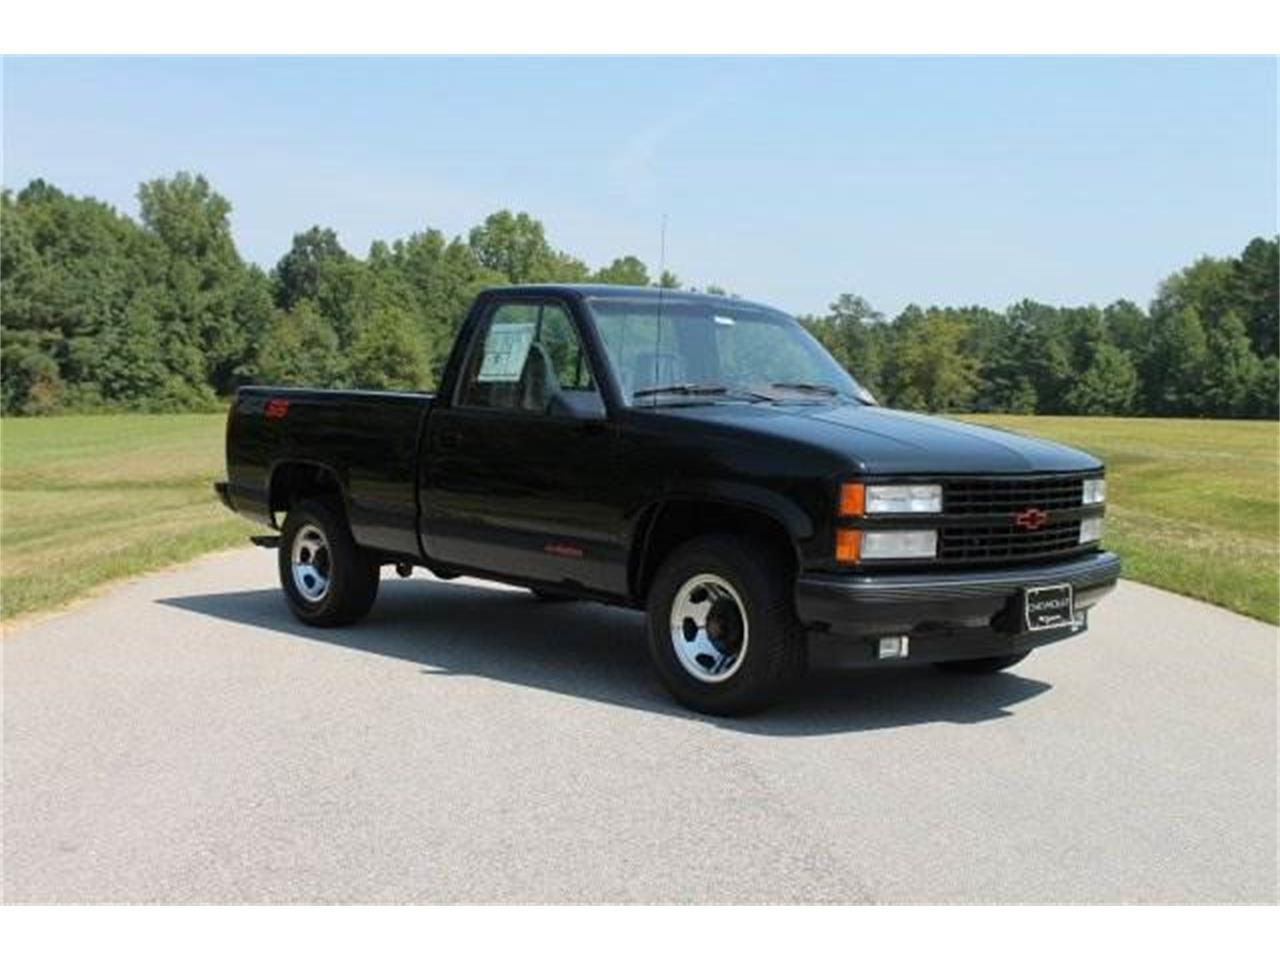 1990 Chevrolet Truck 454 Ss For Sale Classiccars Com Cc